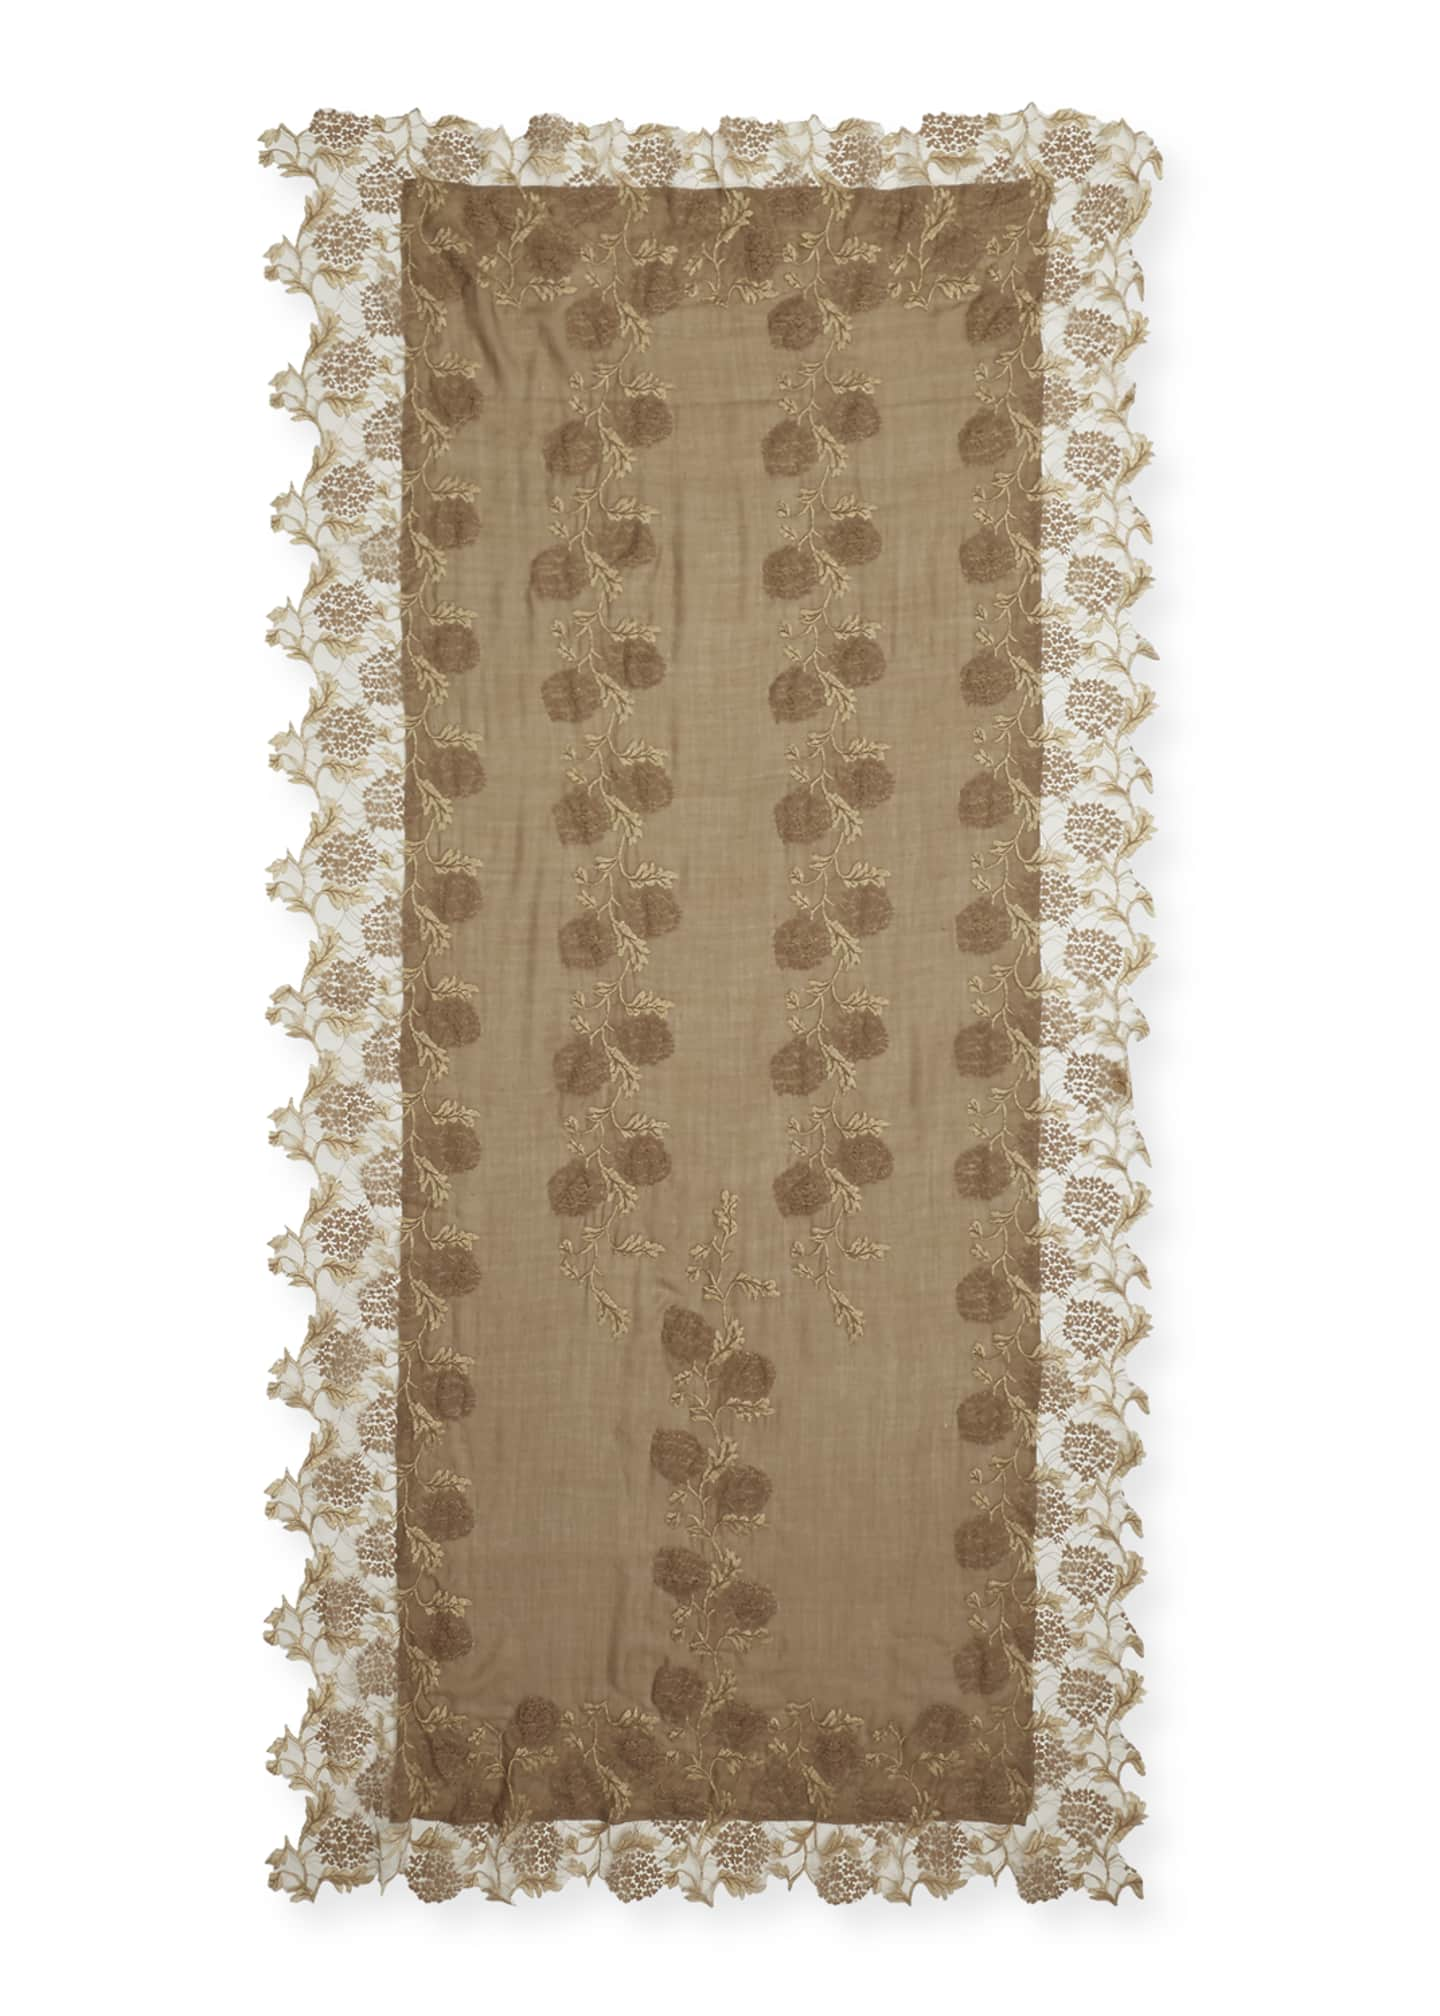 Image 2 of 2: Lace Embroidery Stole